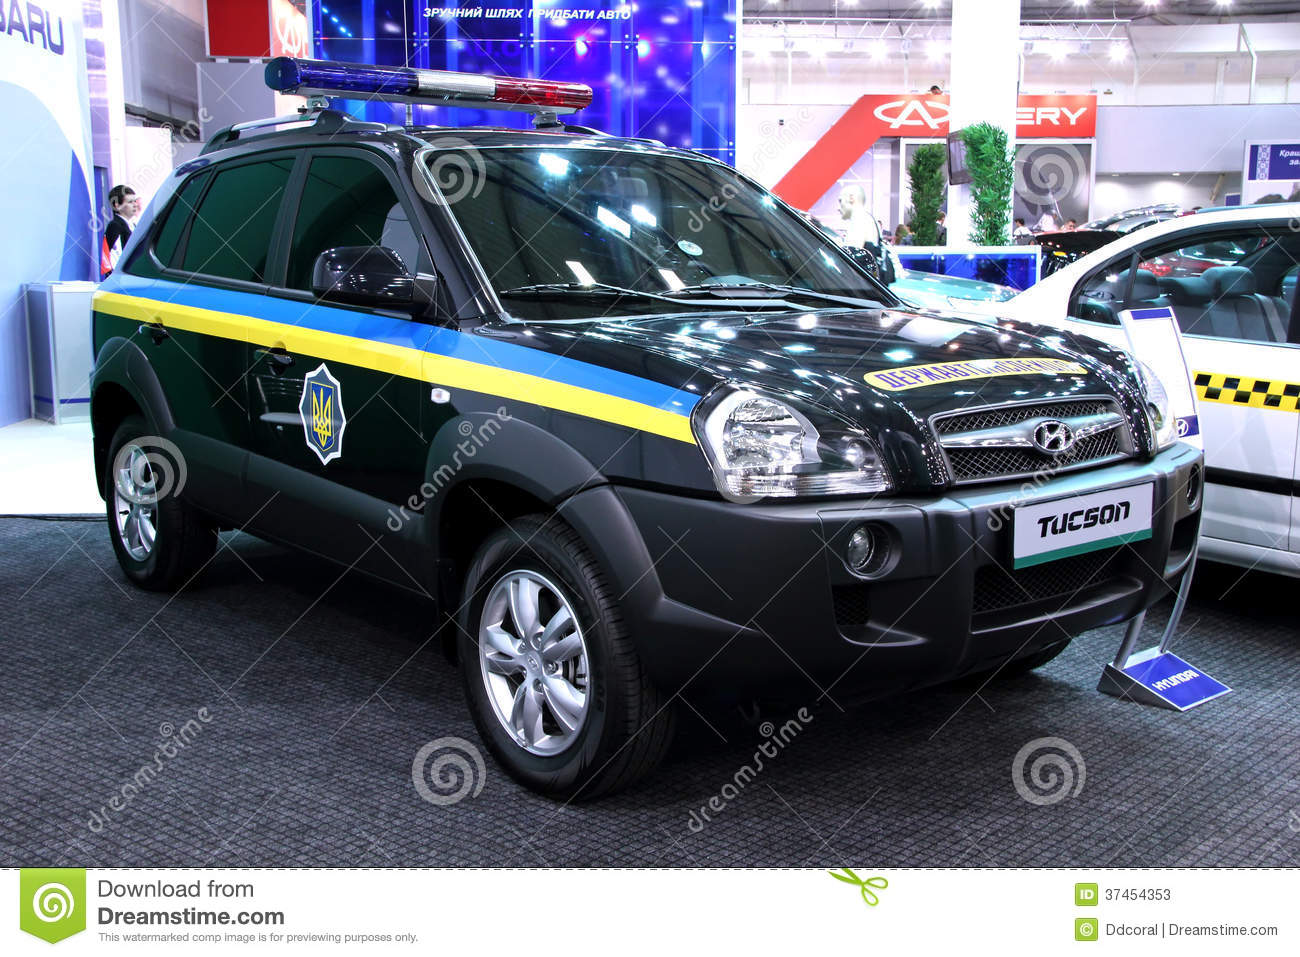 Hyundai tucson police crossover jeep editorial stock photo for Motor vehicle department tucson